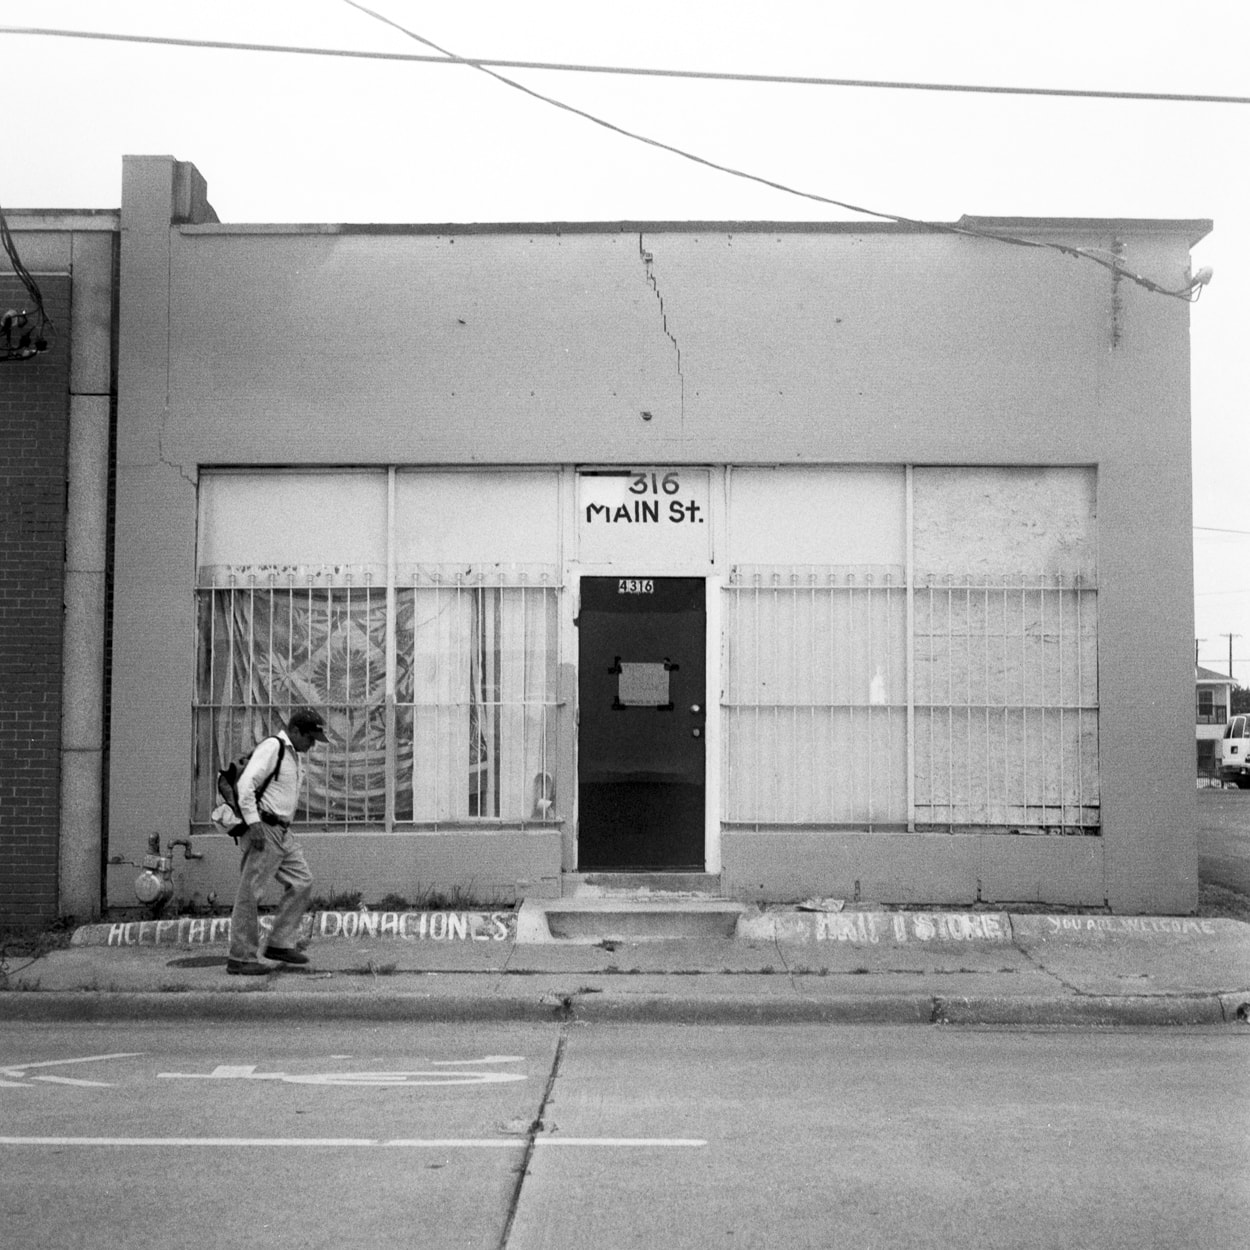 A man walking in front of an old store front